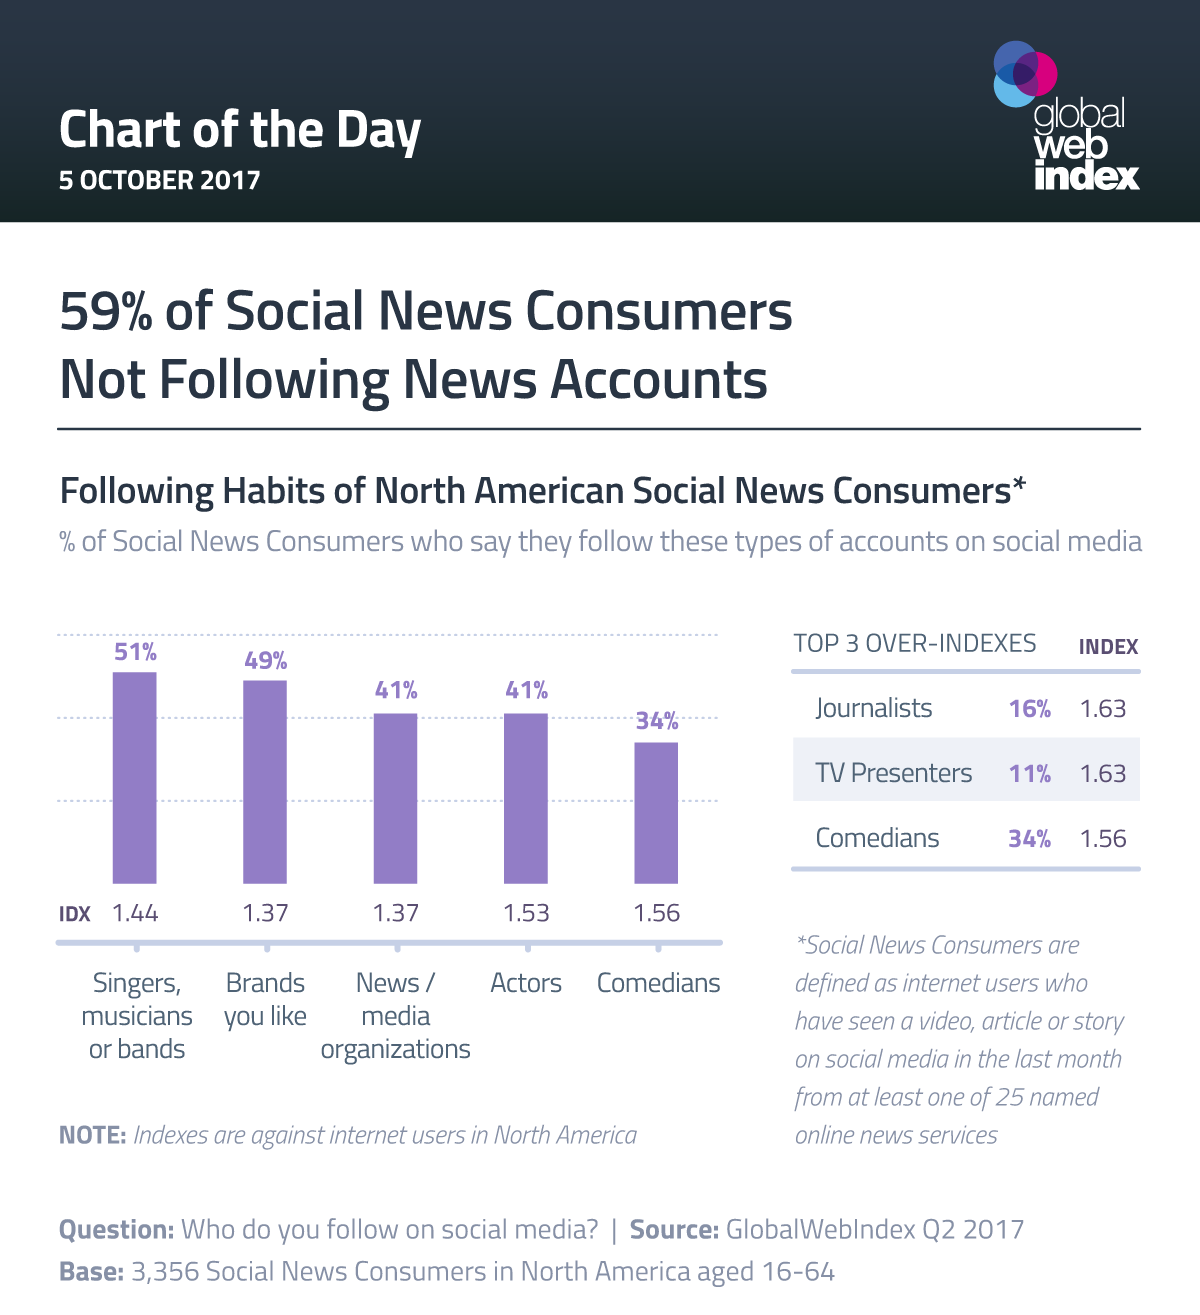 59% of Social News Consumers Not Following News Accounts